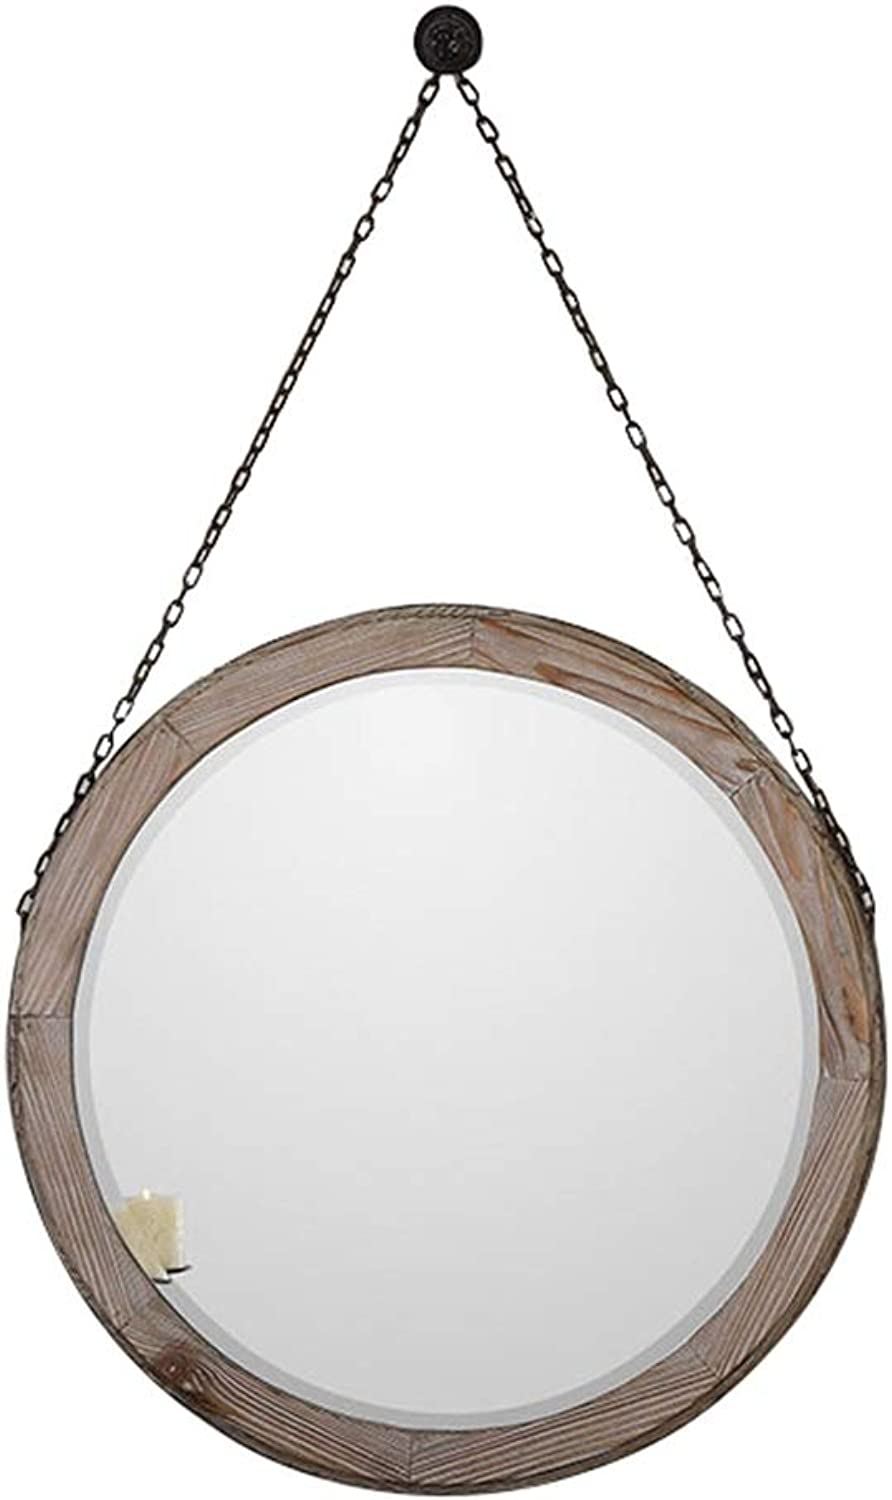 Retro Hanging Mirror as Decorative Wall Bathroom Mirror   Wall Mounted Vanity Mirror and Shaving Mirror   Vintage Wood Frame Mirror Holder (Size   Diameter 50cm)